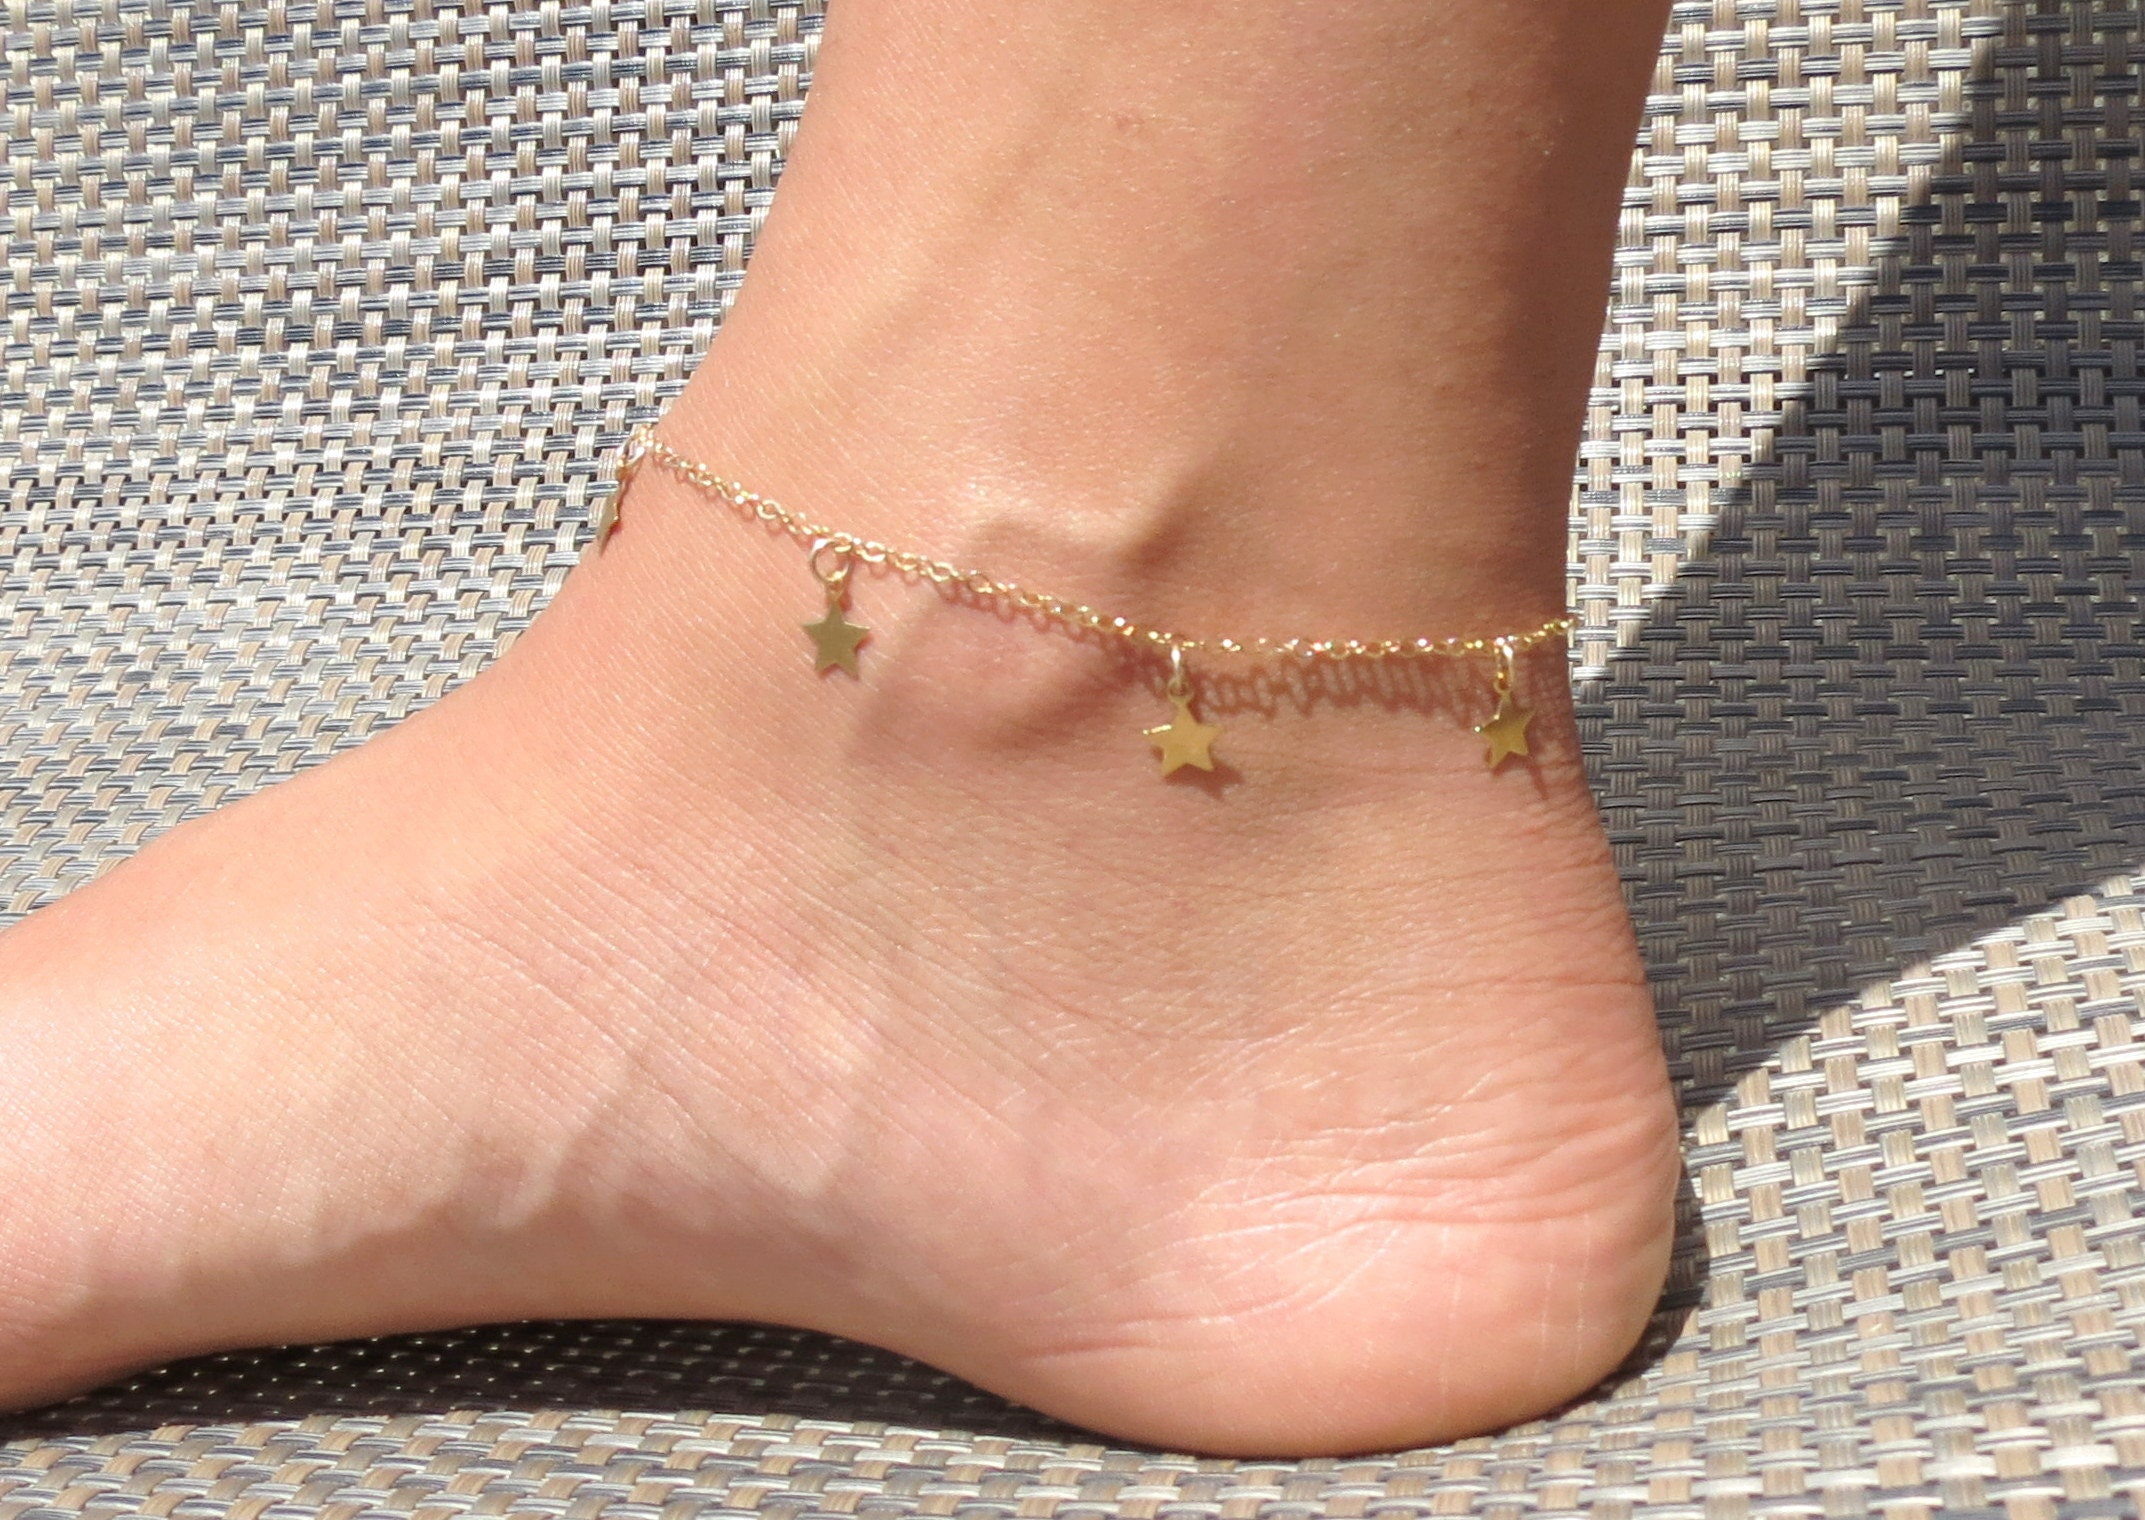 summer elegant with gold her for pin anklet plated hamallah evil charms jewelry charm eye bracelets gift ankle